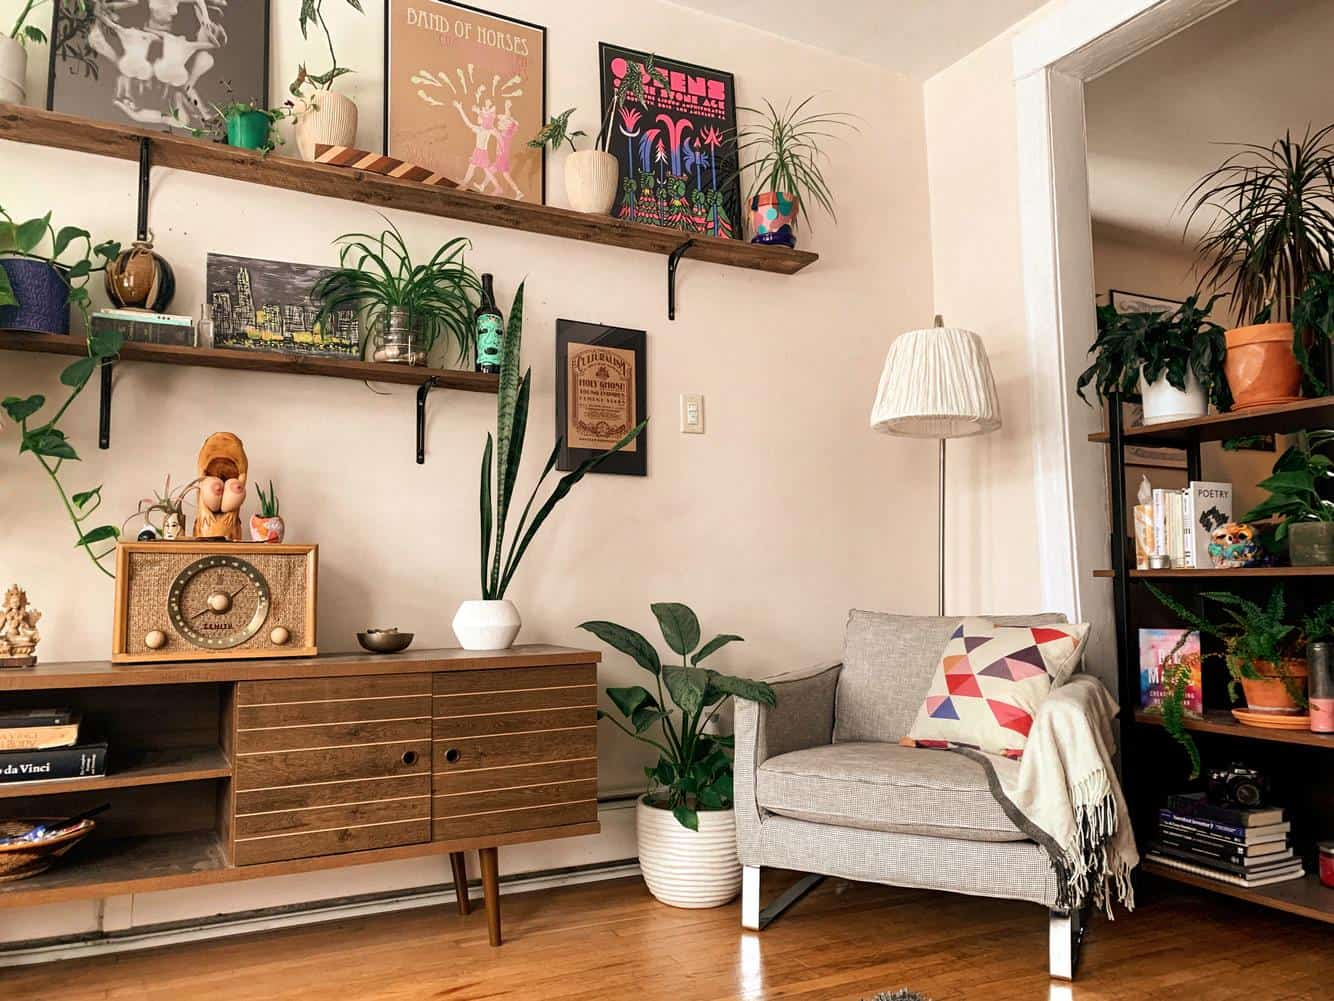 How To Boost Your Living Room's Beauty On A Budget. Ecological casual interior decoration with plants in pots on the cupboard, shelves and even the floor